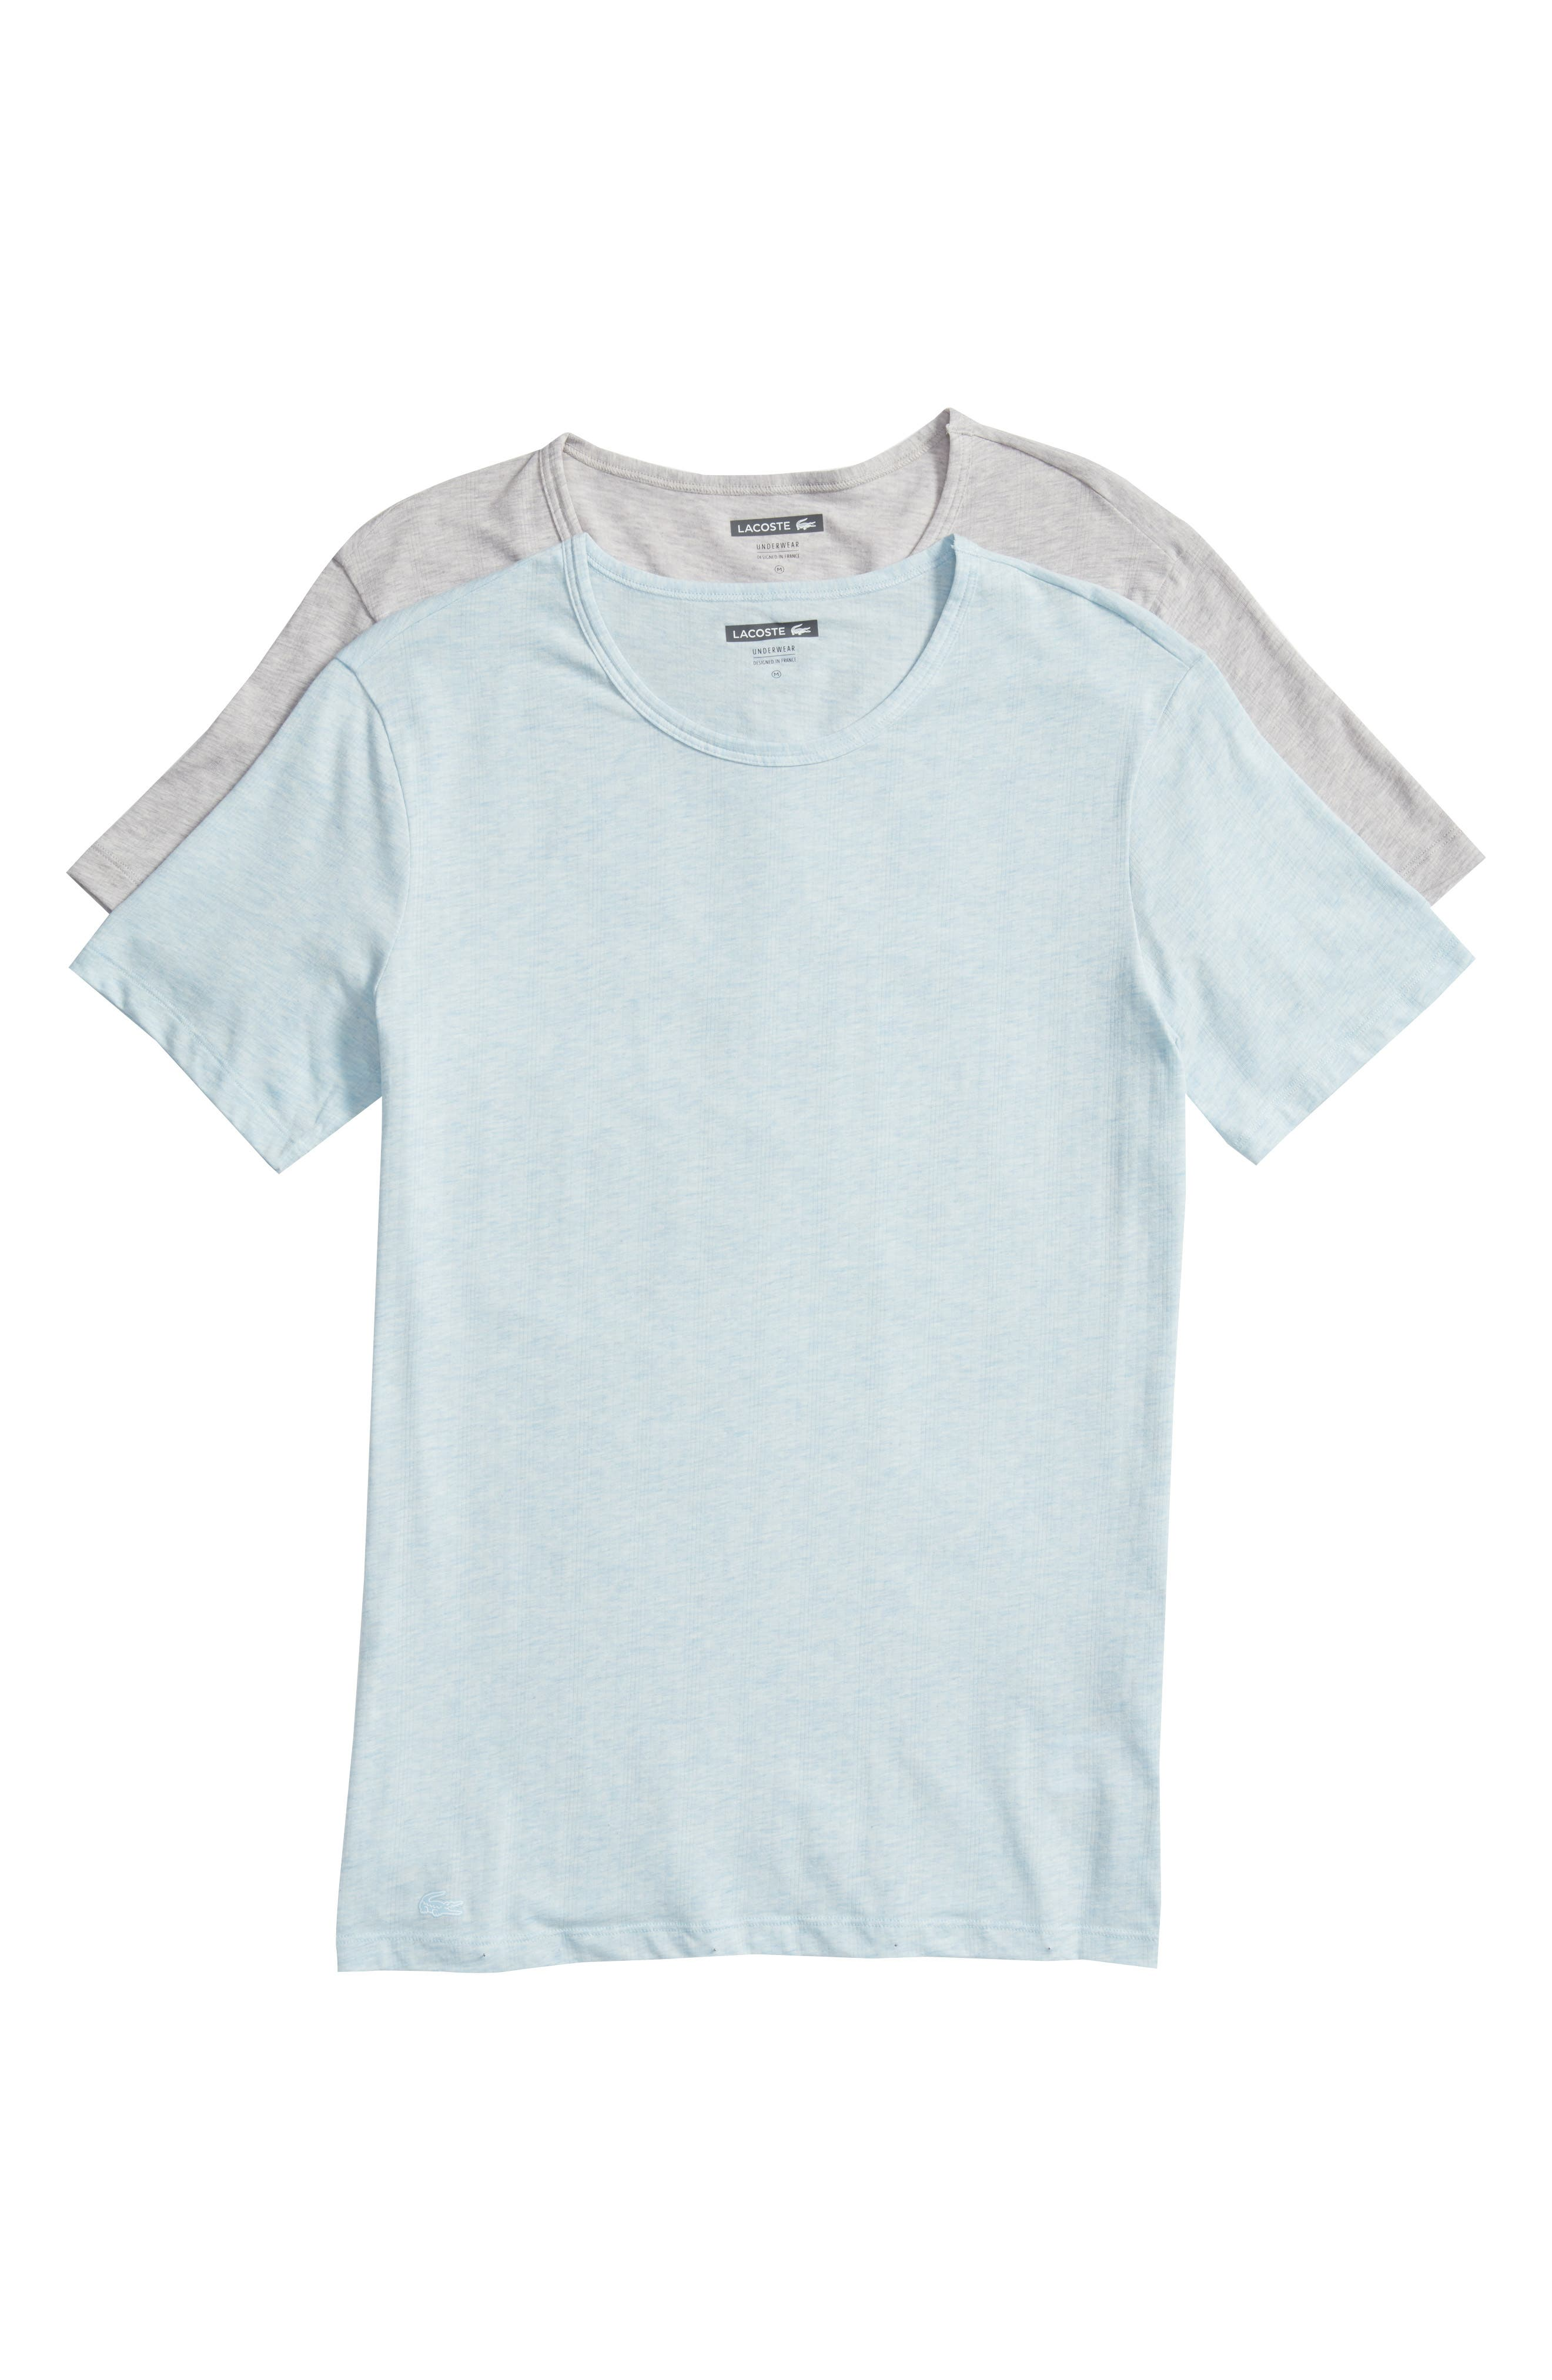 2-Pack Superfine Crewneck T-Shirts,                             Alternate thumbnail 6, color,                             GREY/ BLUE HEATHER